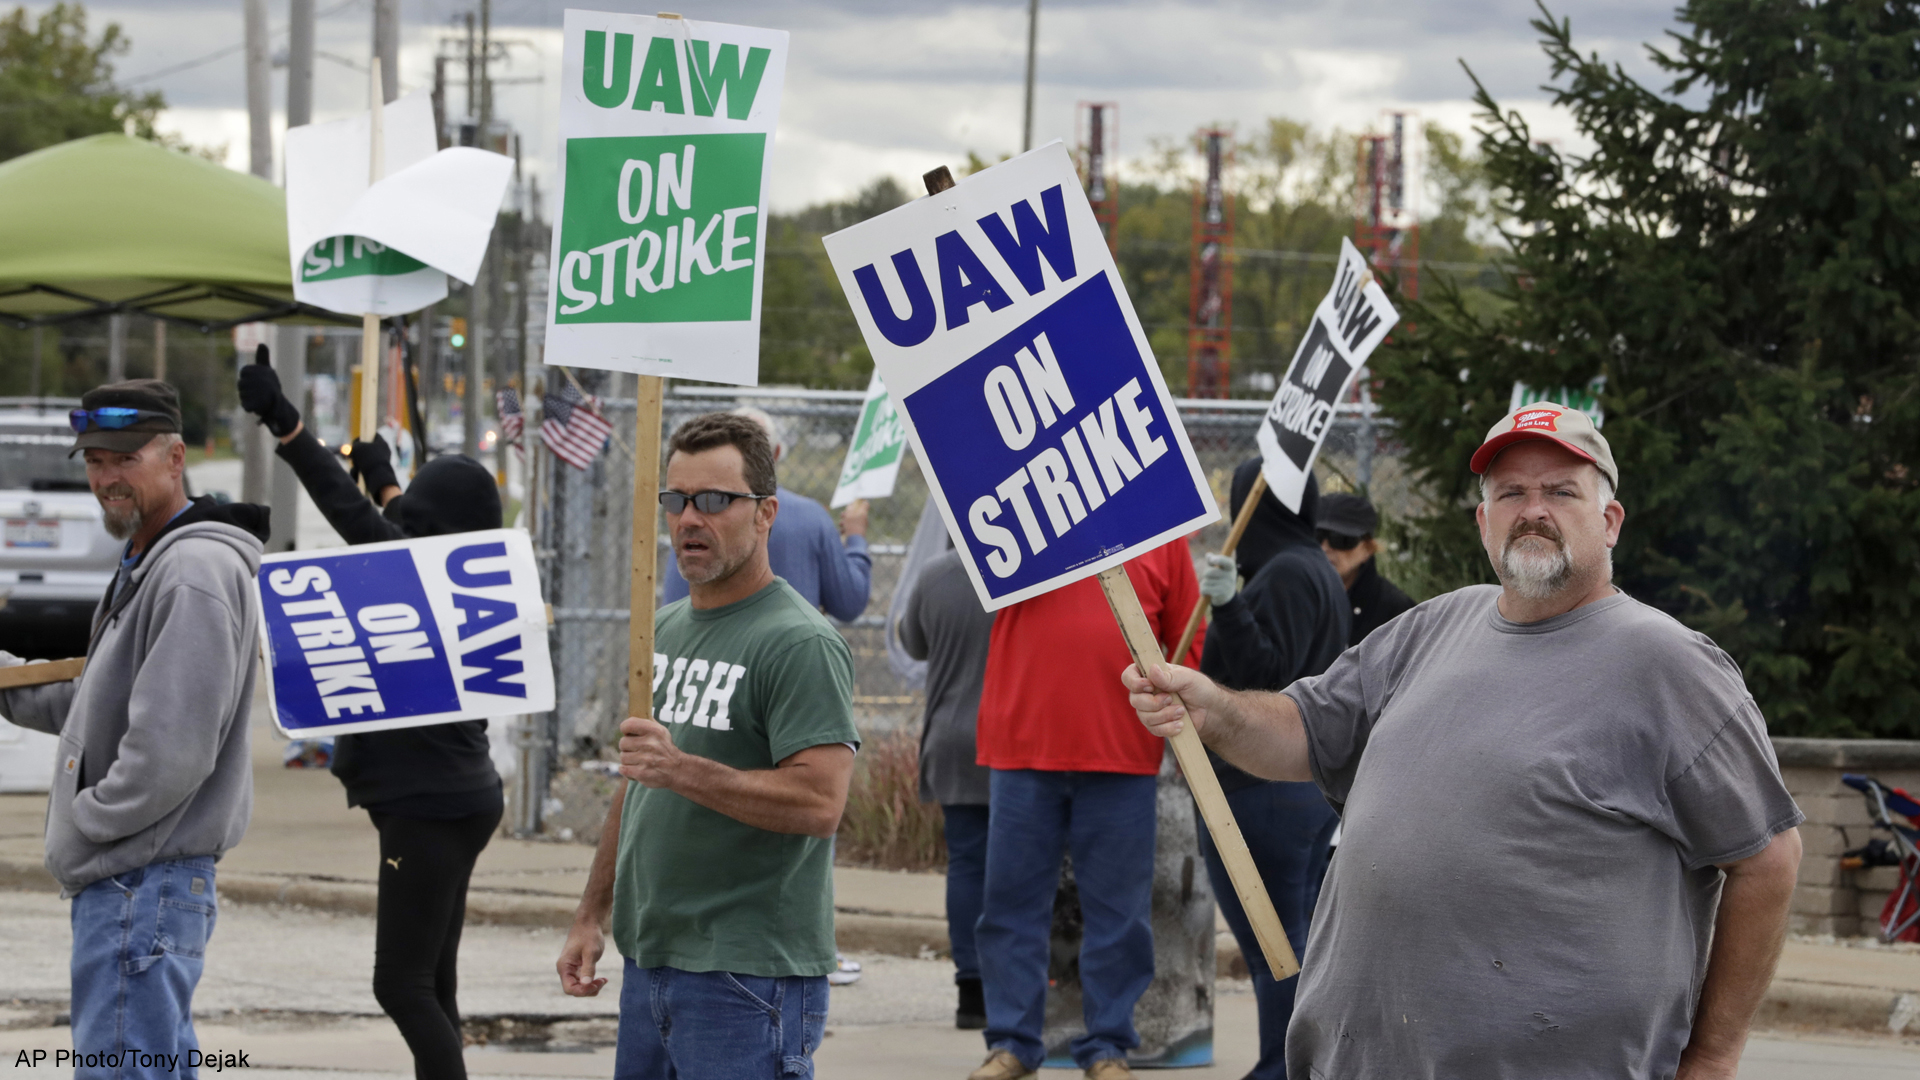 UAW GM strike